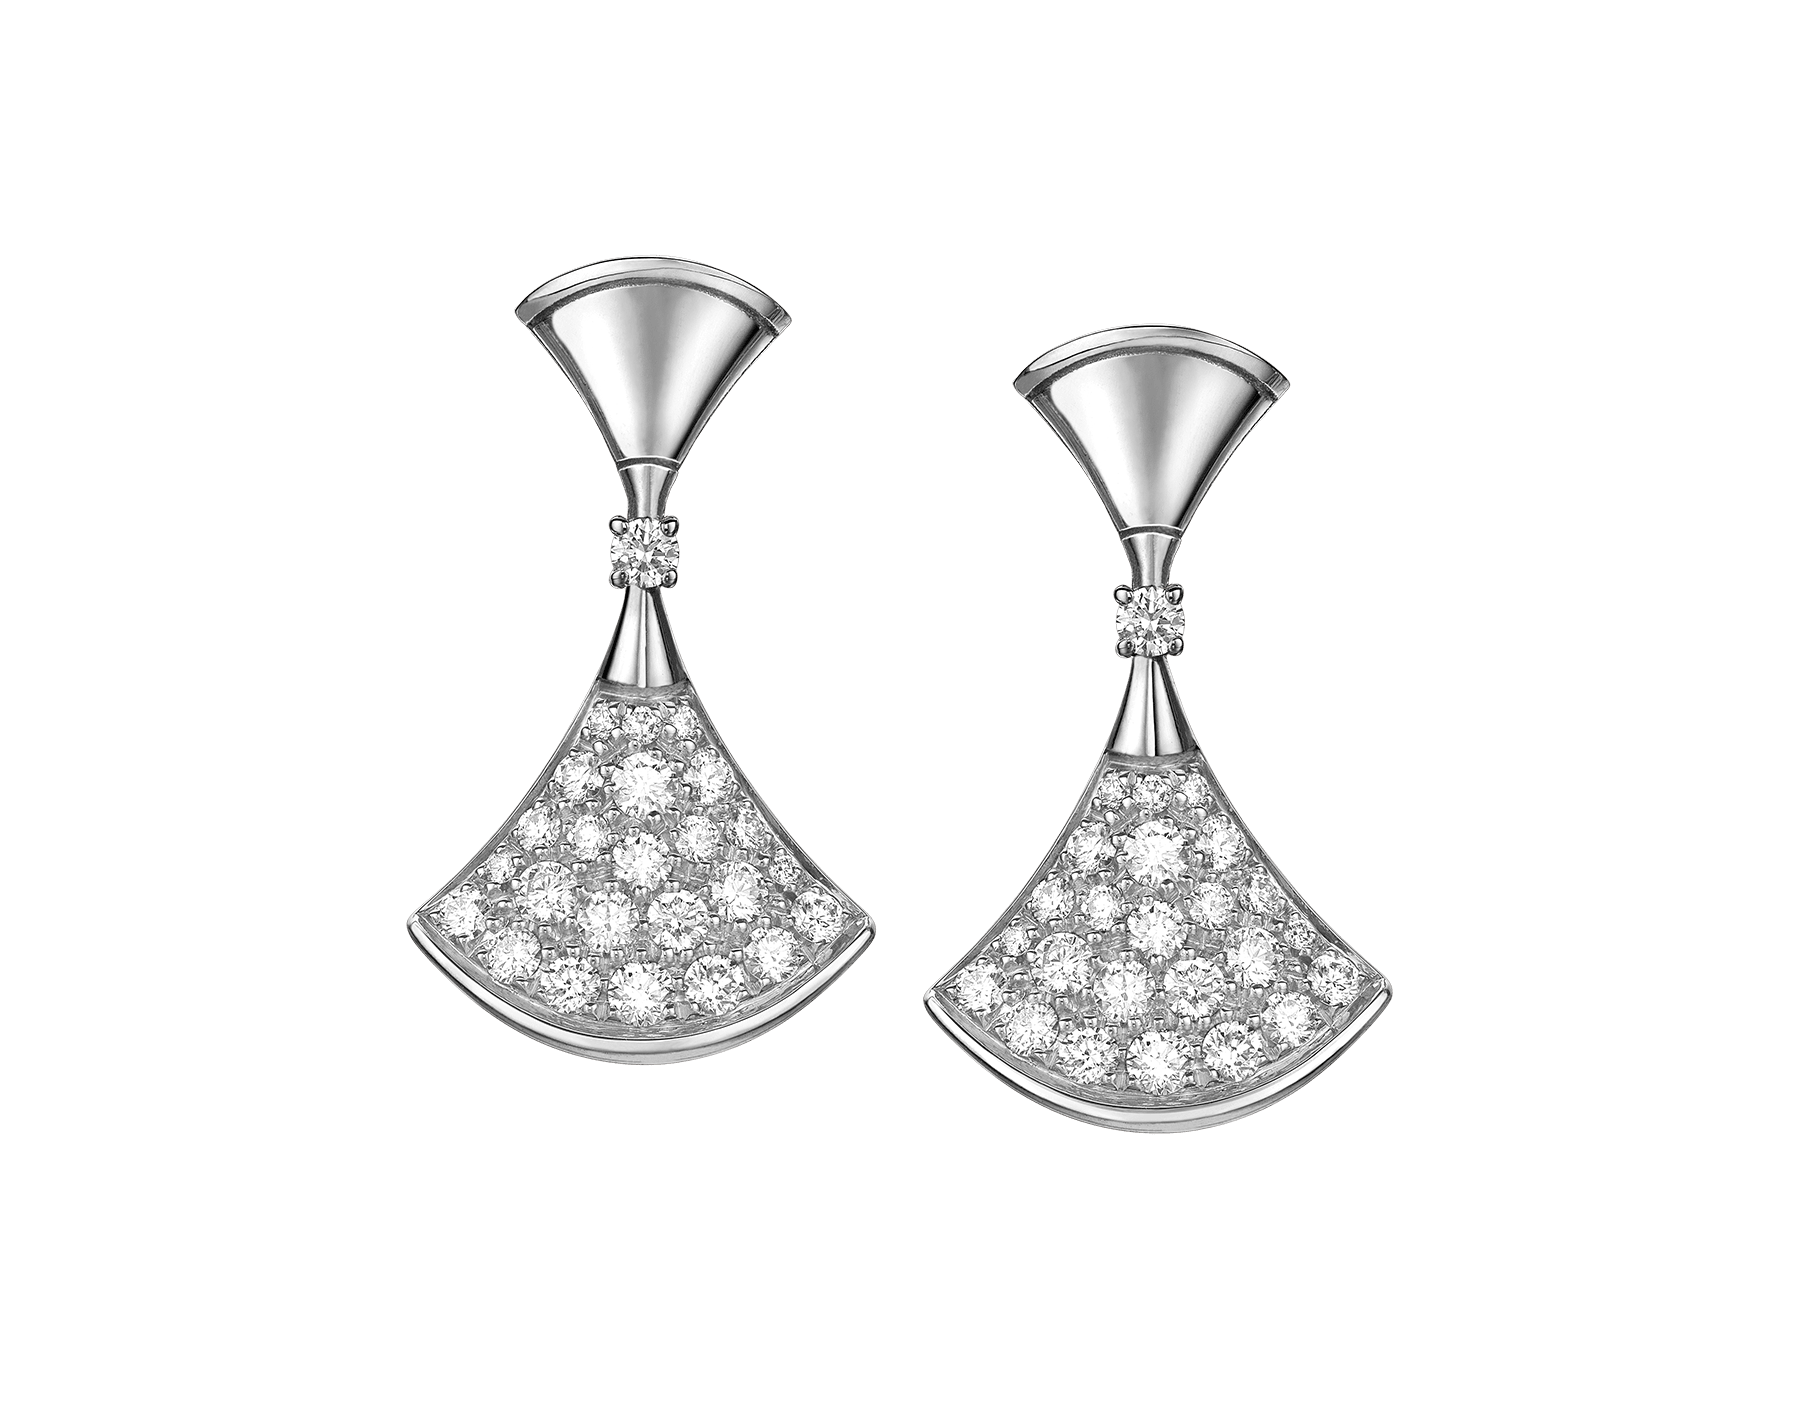 DIVAS' DREAM earrings in 18 kt white gold set with a diamond and pavé diamonds. 351100 image 1